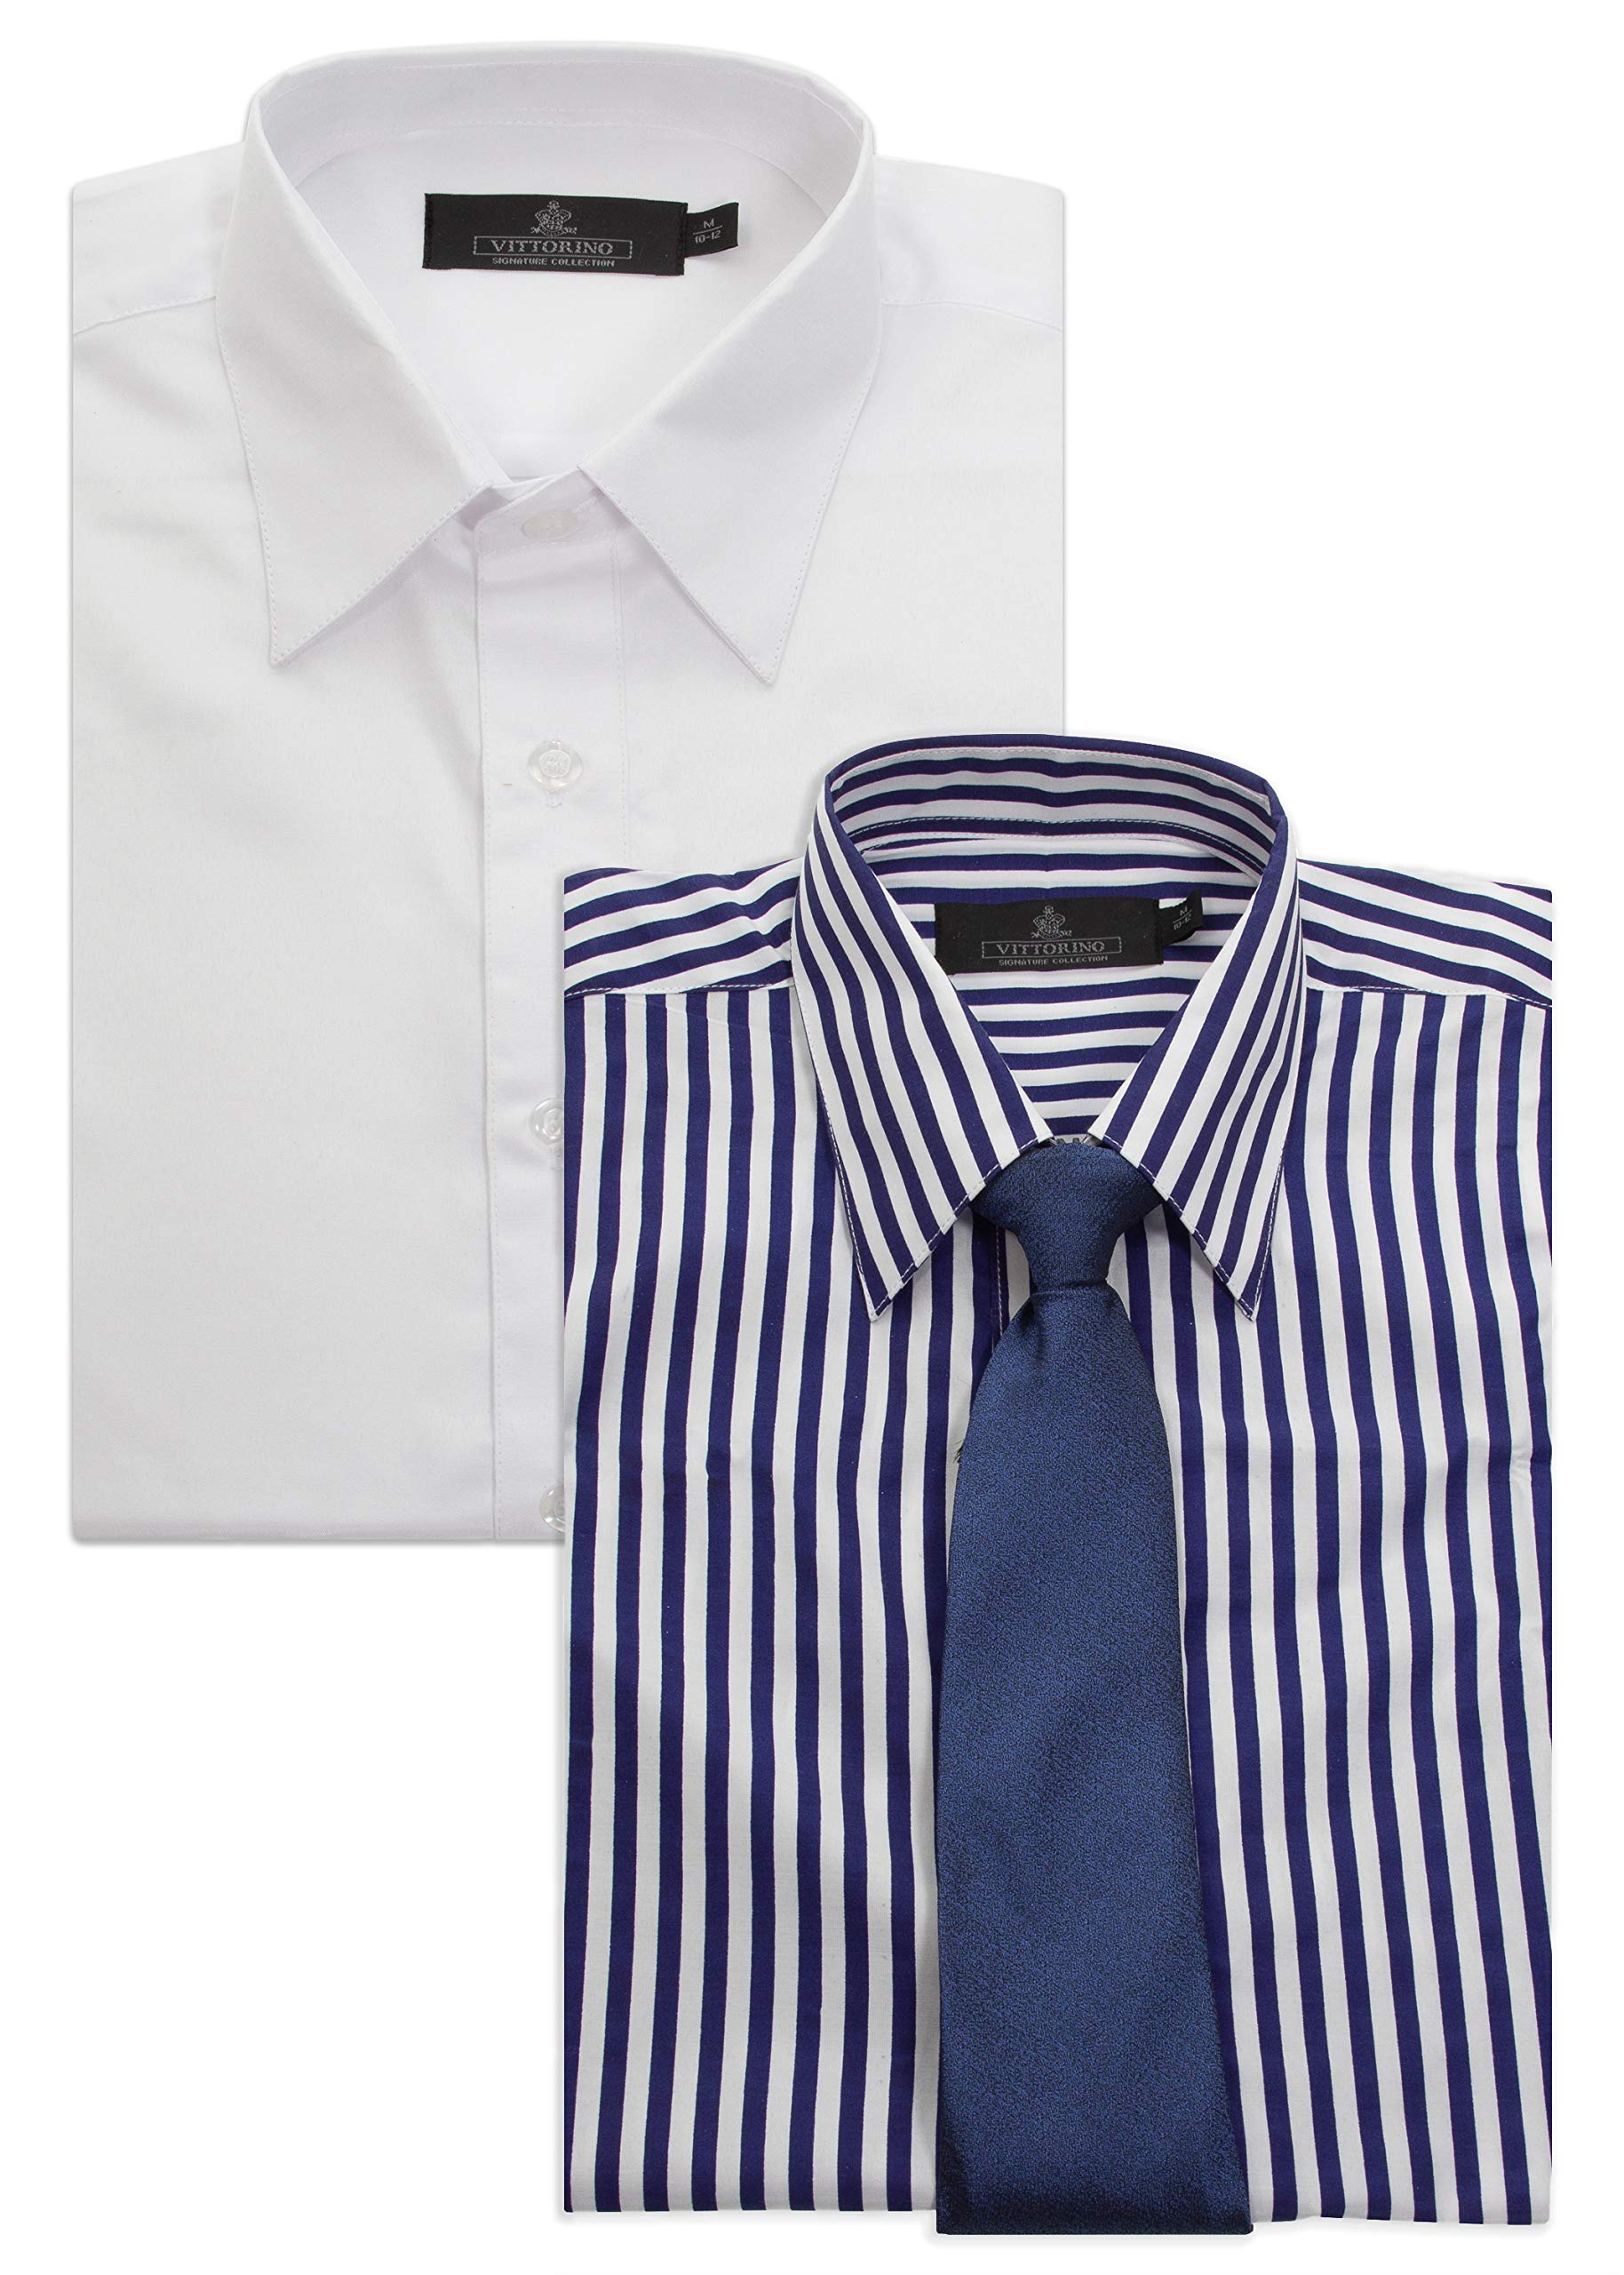 Vittorino Boys' Value Pack 2 Long Sleeve Dress Shirts and Matching Tie Awesome Value, Blue White, 14/16